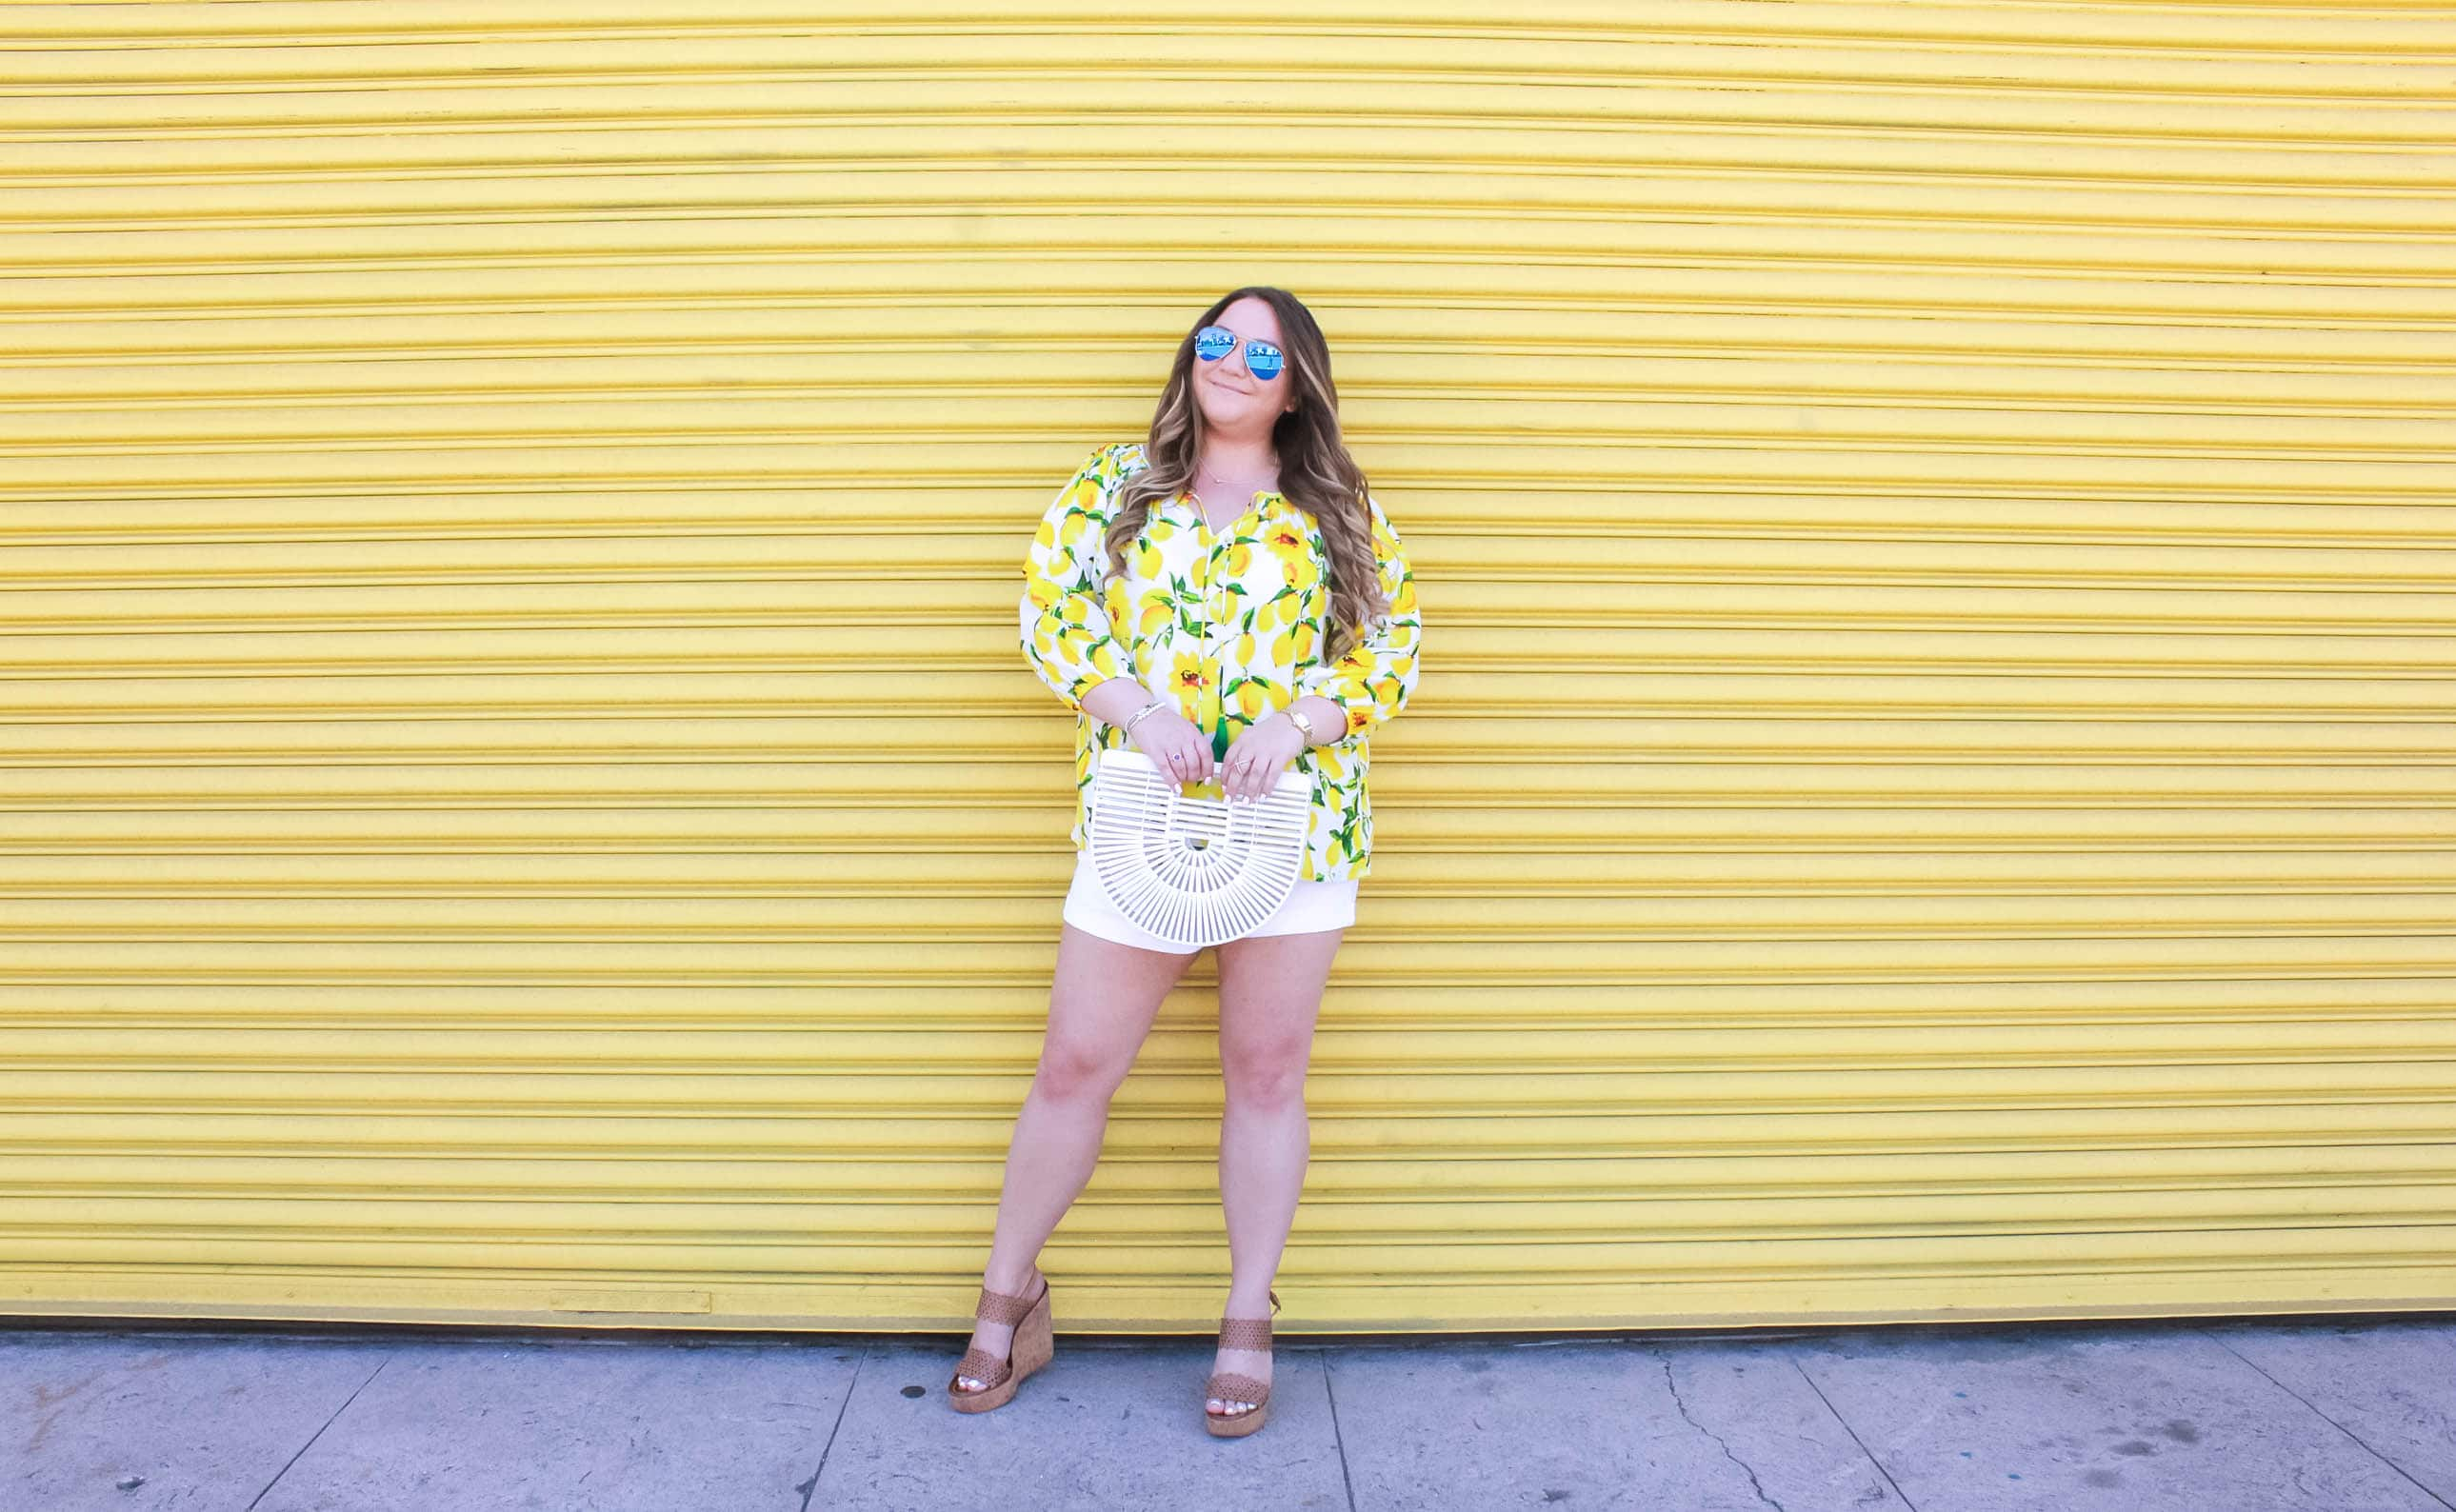 missyonmadison, missyonmadison instagram, missyonmadison blog, fahsion blog, fahsion blogger, style blog, style blogger, ootd, ebay fashion, ebay fashion finds, cult gaia bag, cult gaia ark bag, white ark bag, white cult gaia bag, bloglovin, fashion blogger, style blog, style blogger, raybans, tory burch wedges, tory burch sandals, lemon blouse, lemon shirt, white denim shorts, fashion inspo, summer style, summer style guide